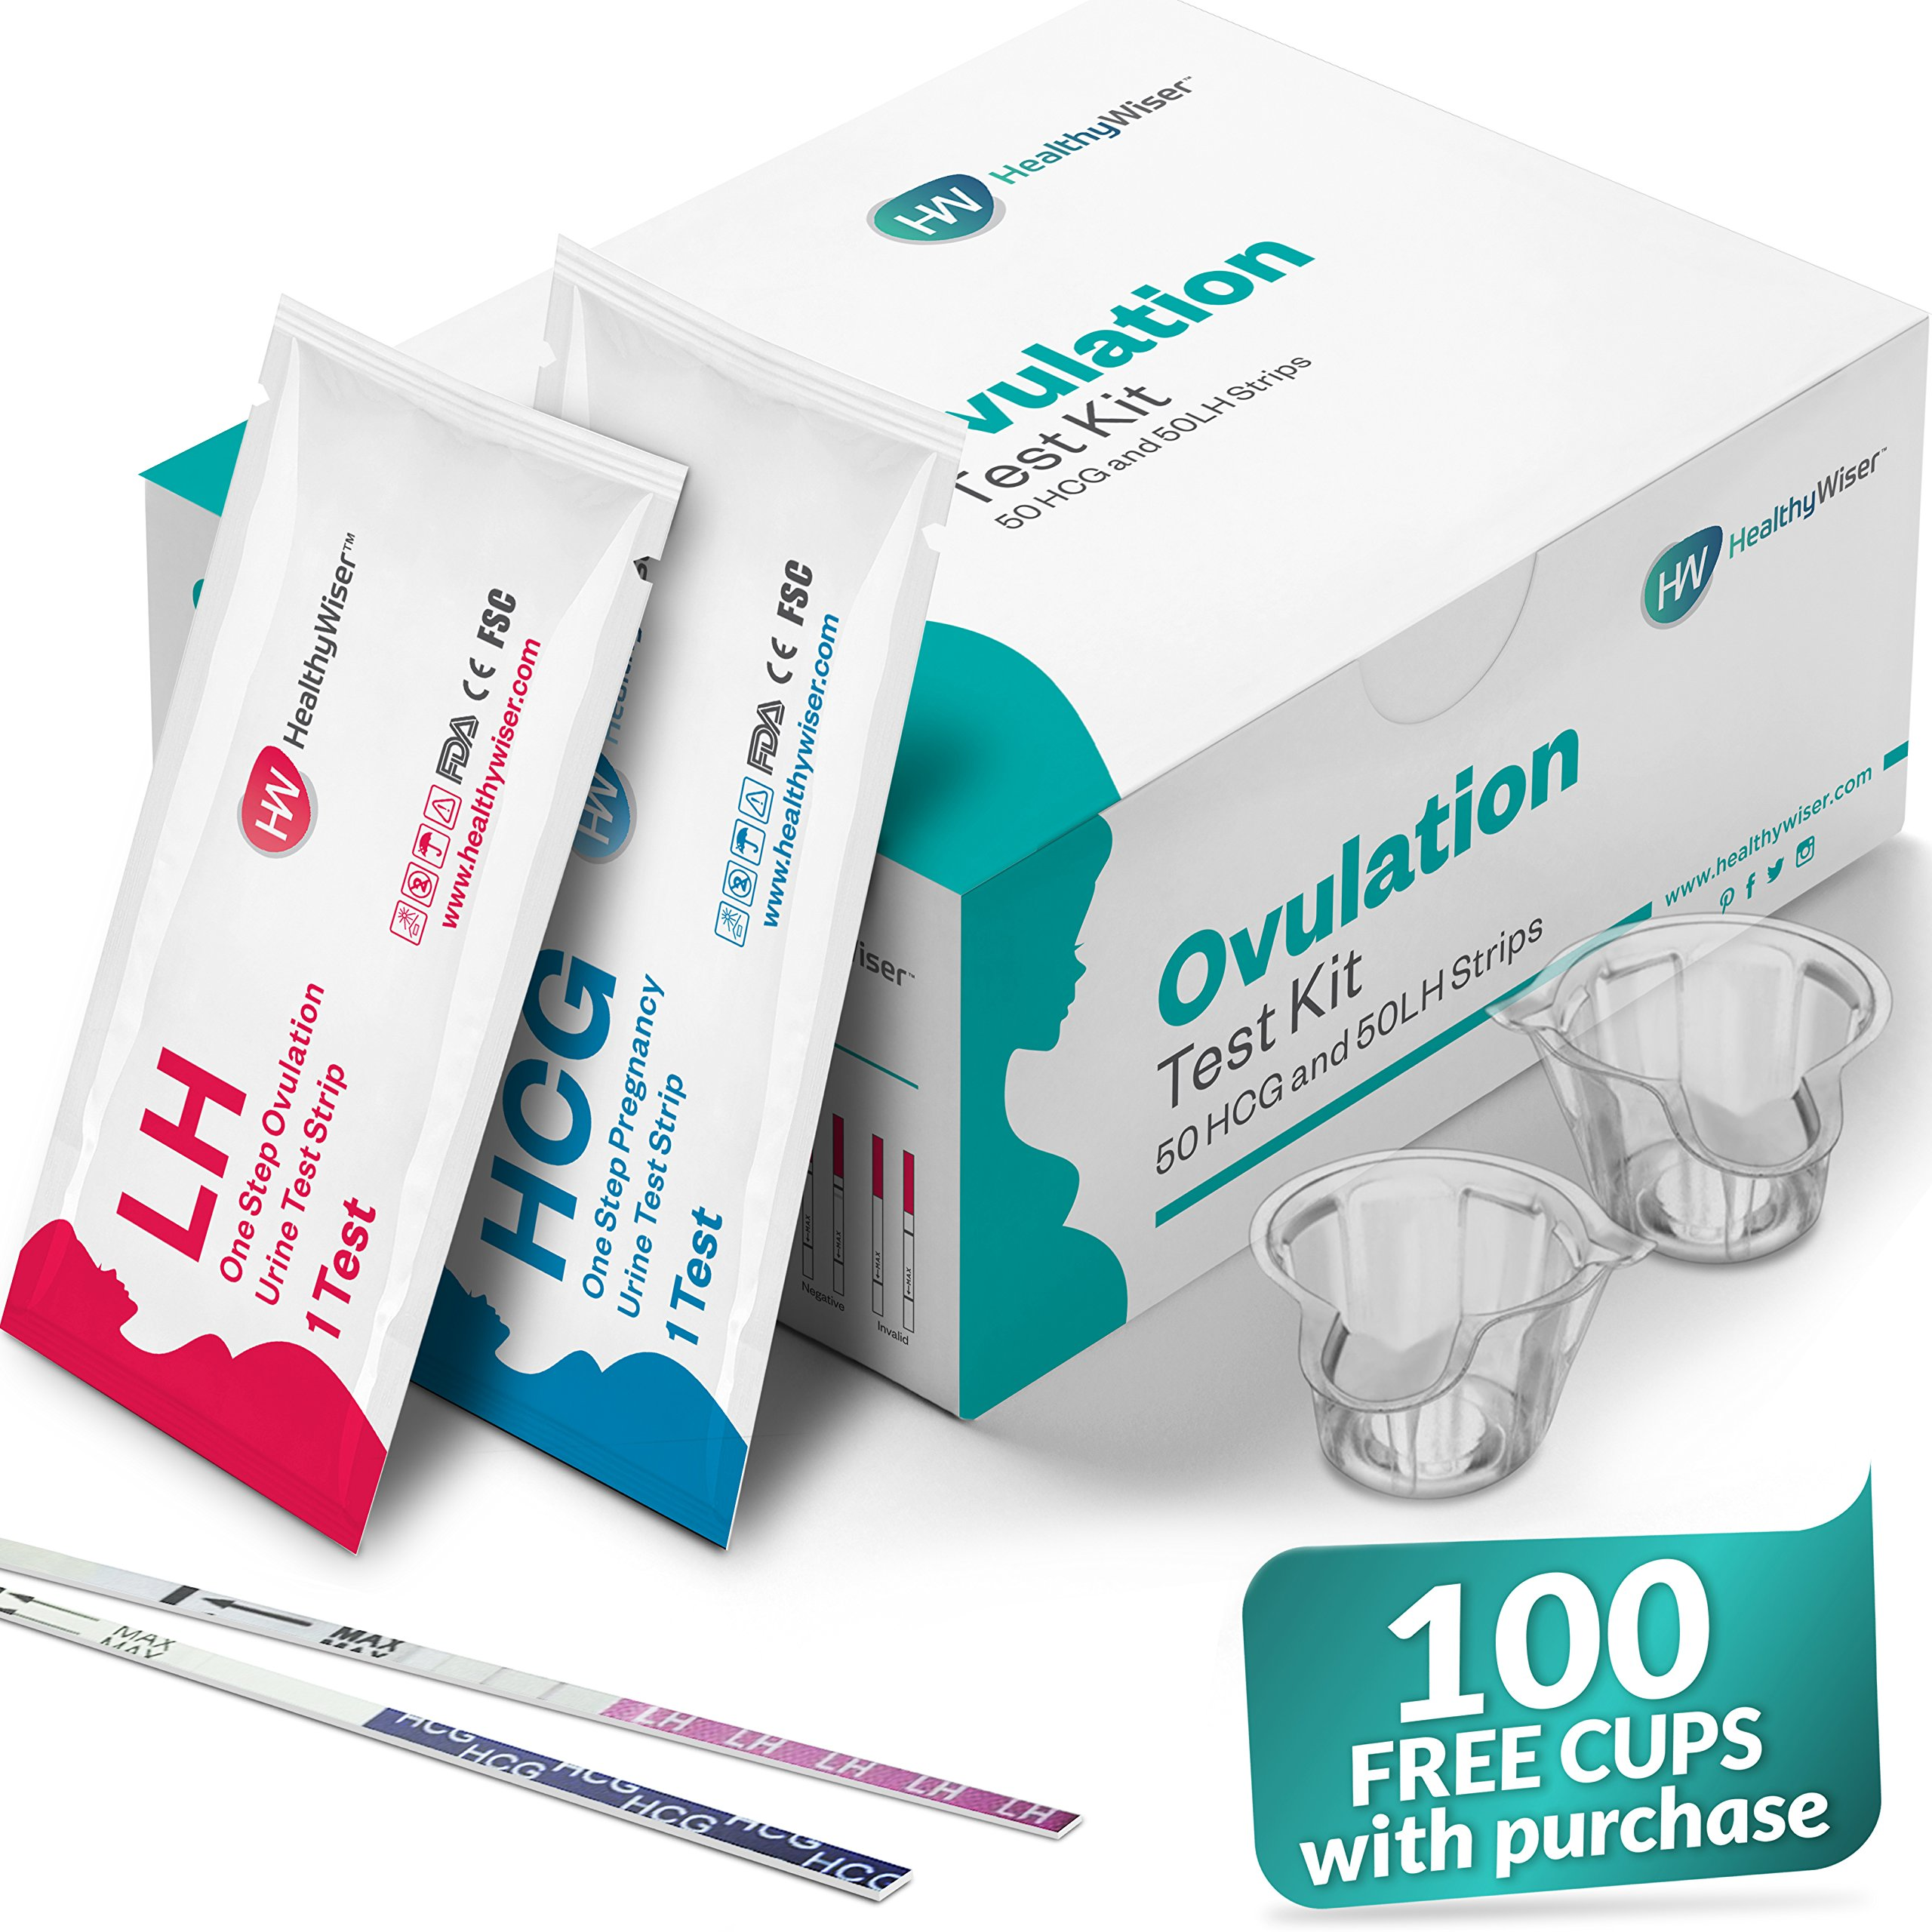 Pregnancy Test Kit, 50 Ovulation and 50 Pregnancy Test Strips, Monitor & Track Fertility, Predictor Kit, Clear & Accurate Results, LH & HCG Urine Strips, Gifts For Your Fertile Days, Ovulation Tracker